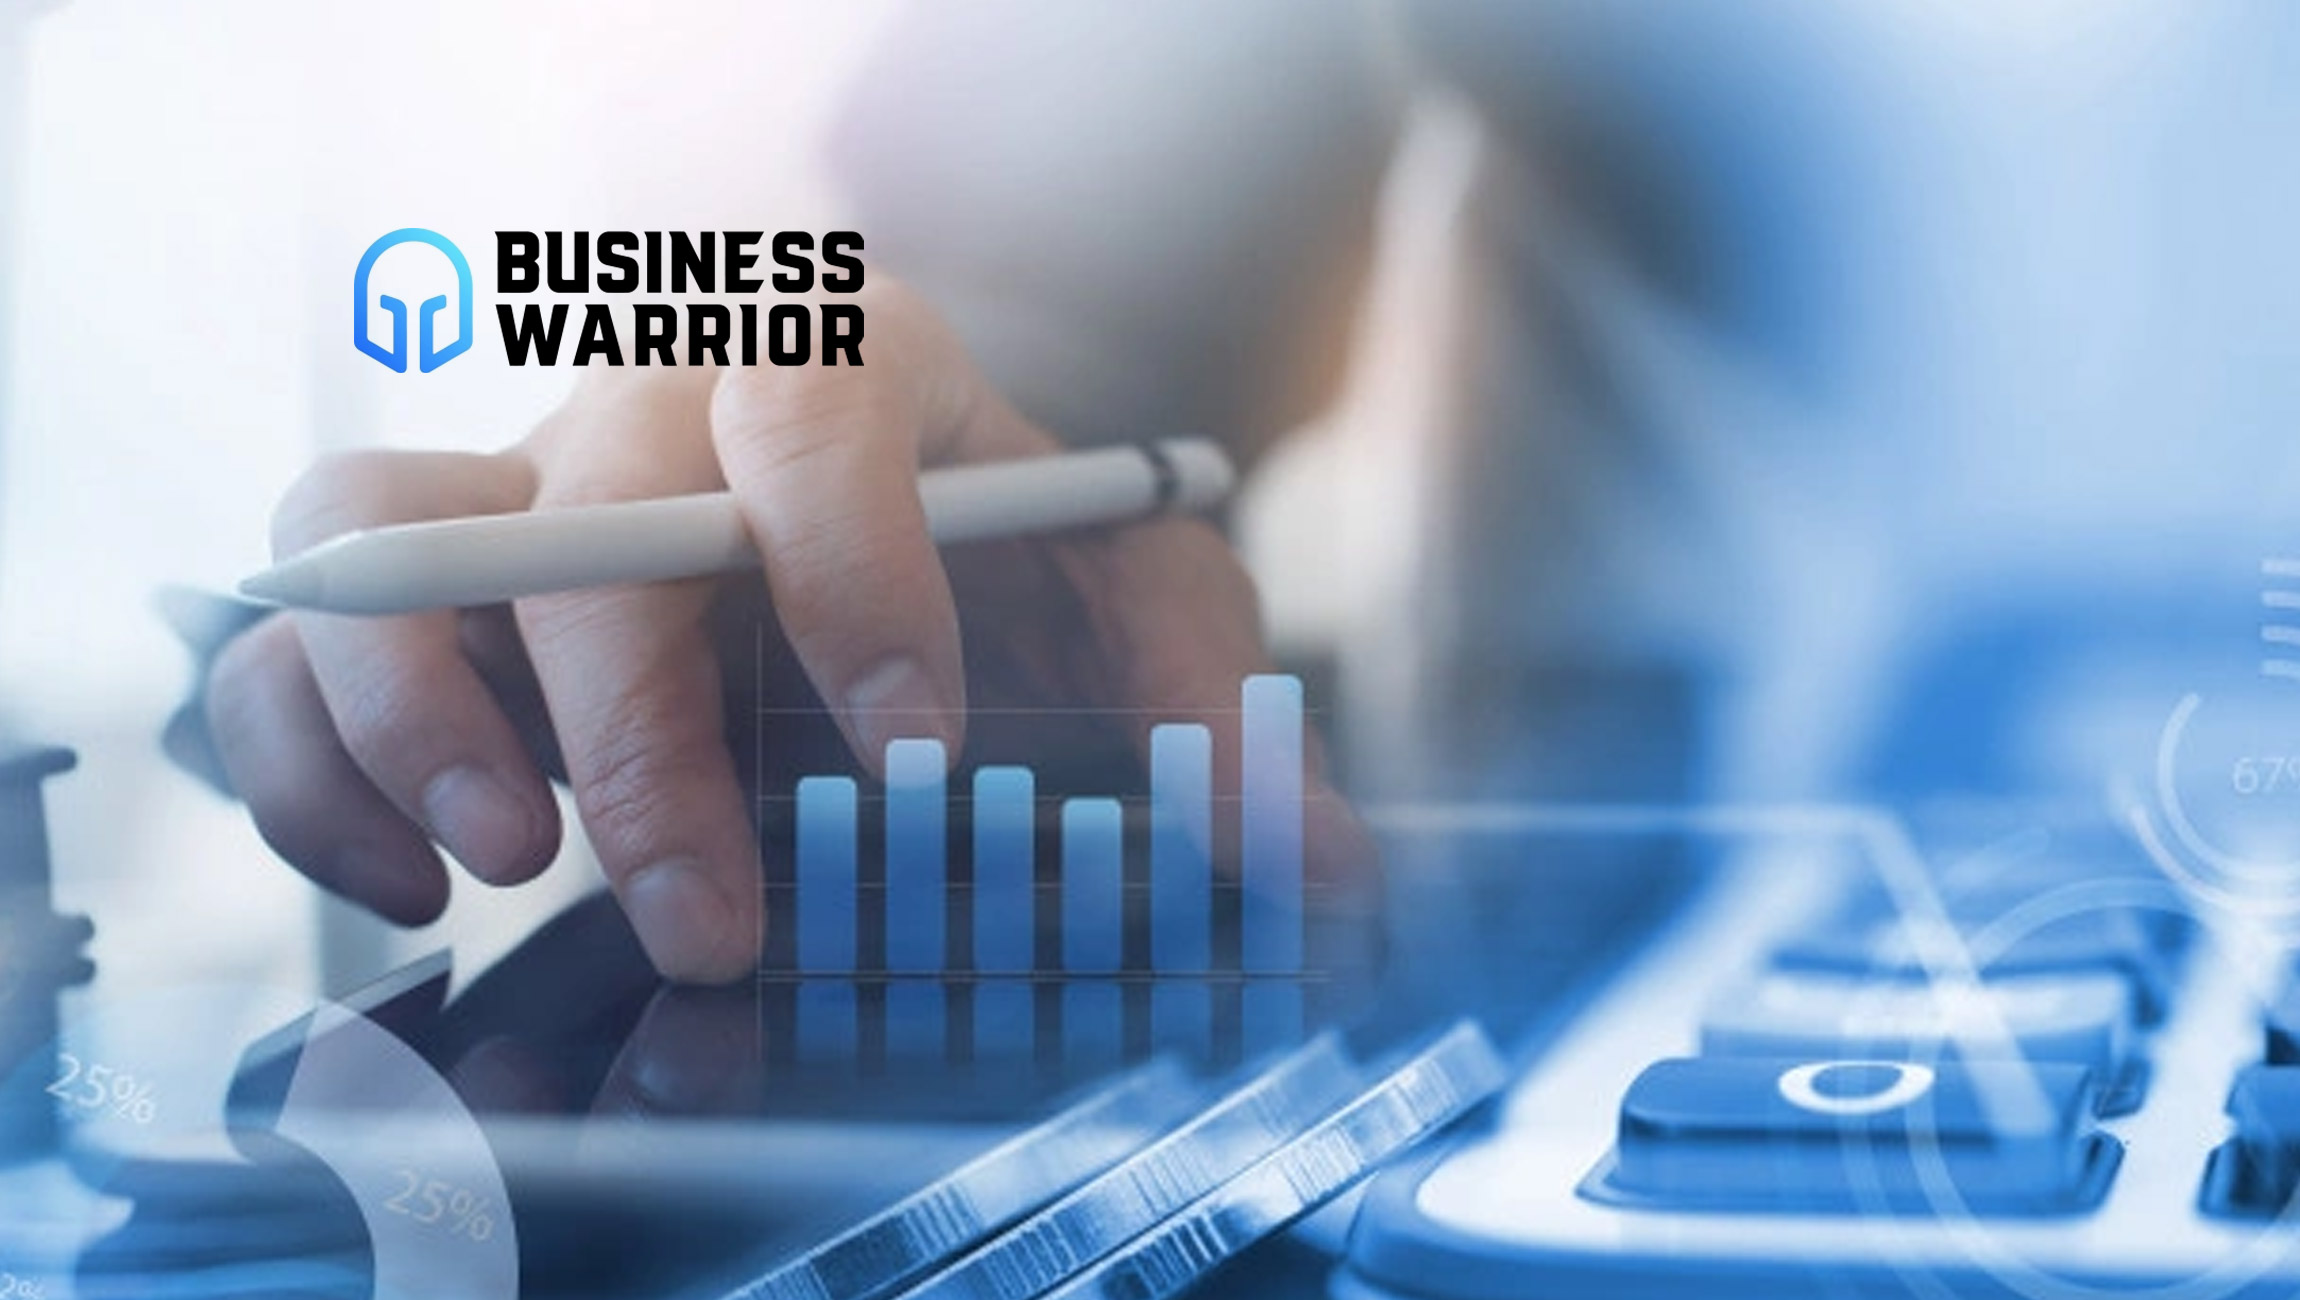 Business-Warrior-Outperforms-Projected-Revenue-for-Three-Straight-Months